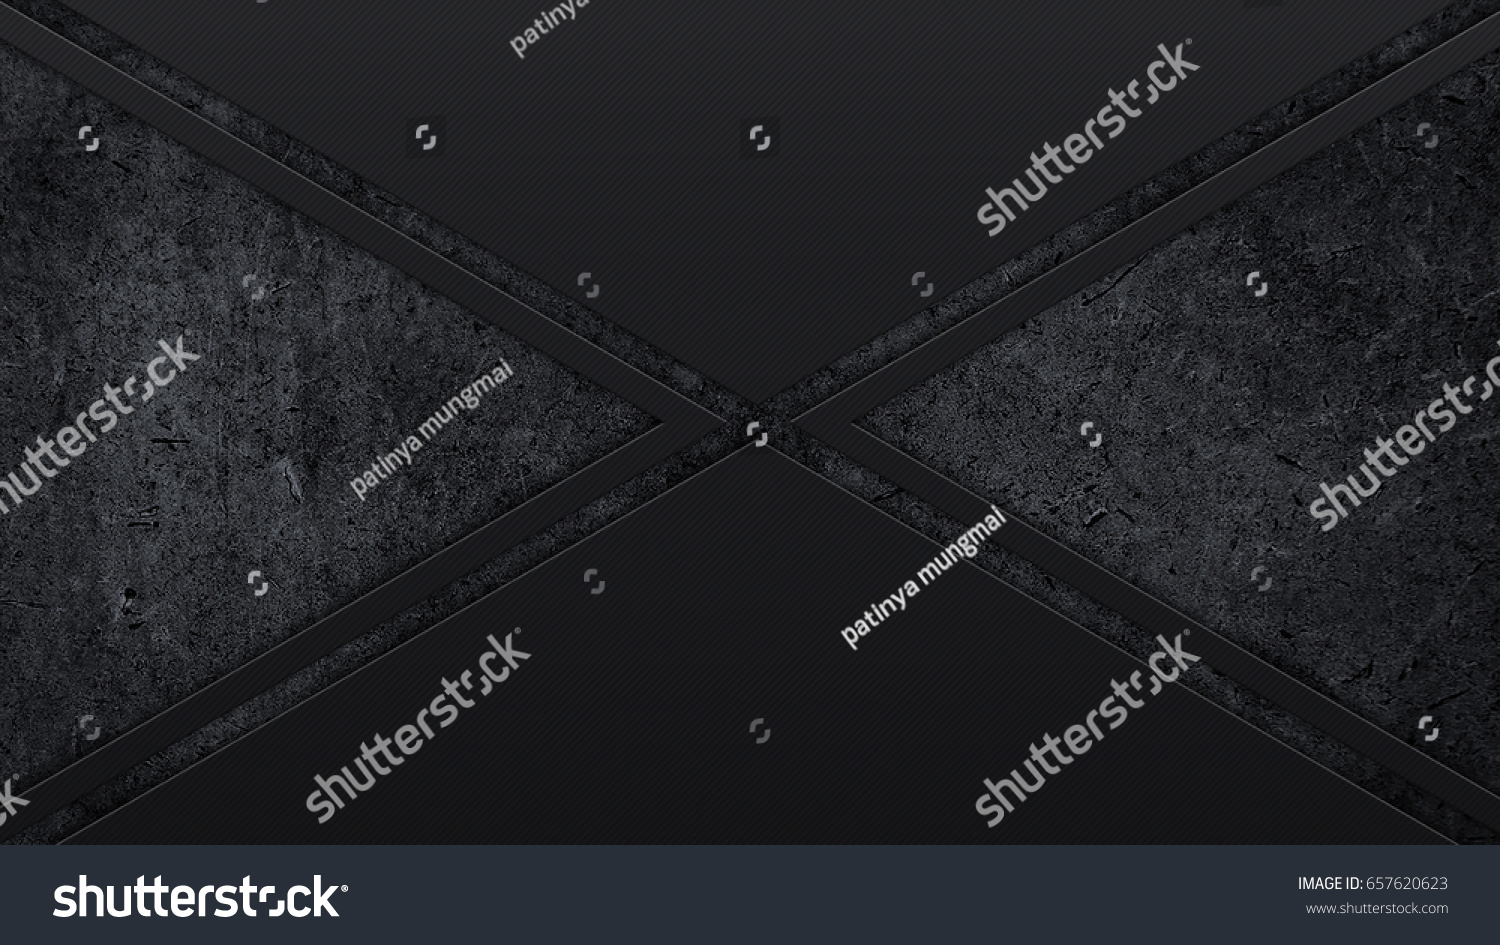 Dark Metal Wallpaper With Rock Background The Art Of Abstract Black Texture